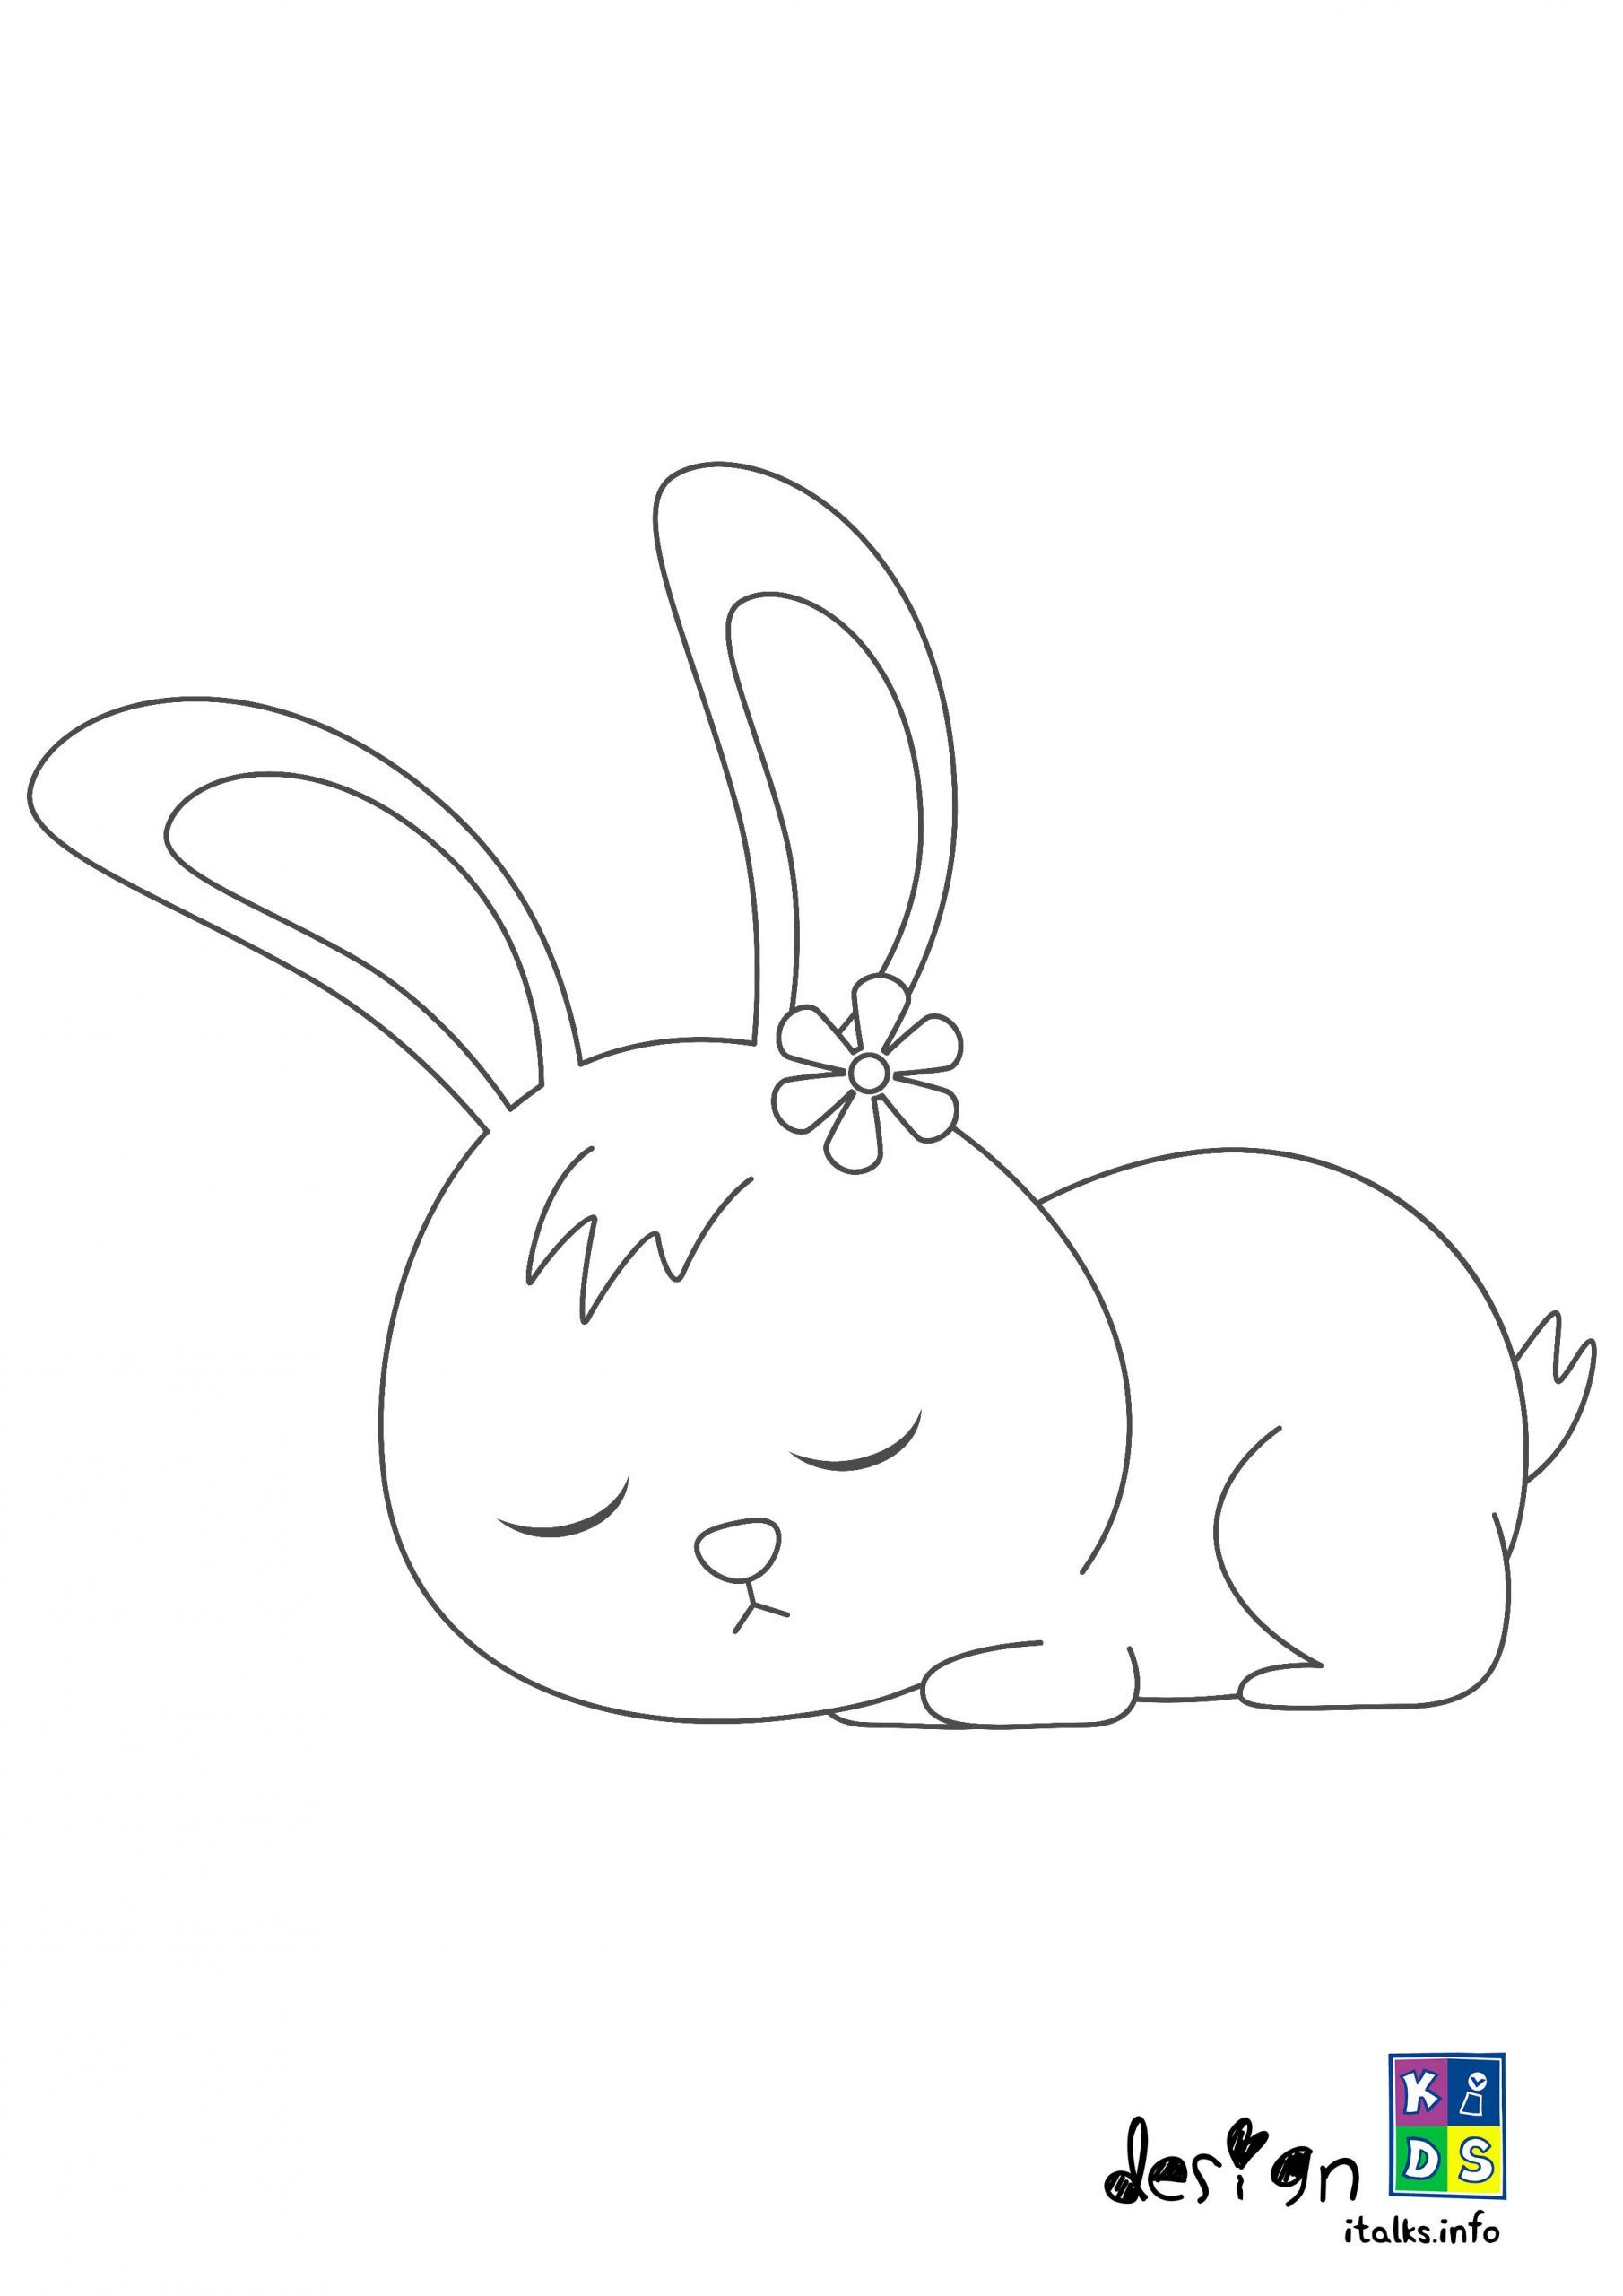 Pin By Robert On Art Bunny Coloring Pages Sleeping Bunny Free Coloring Pages